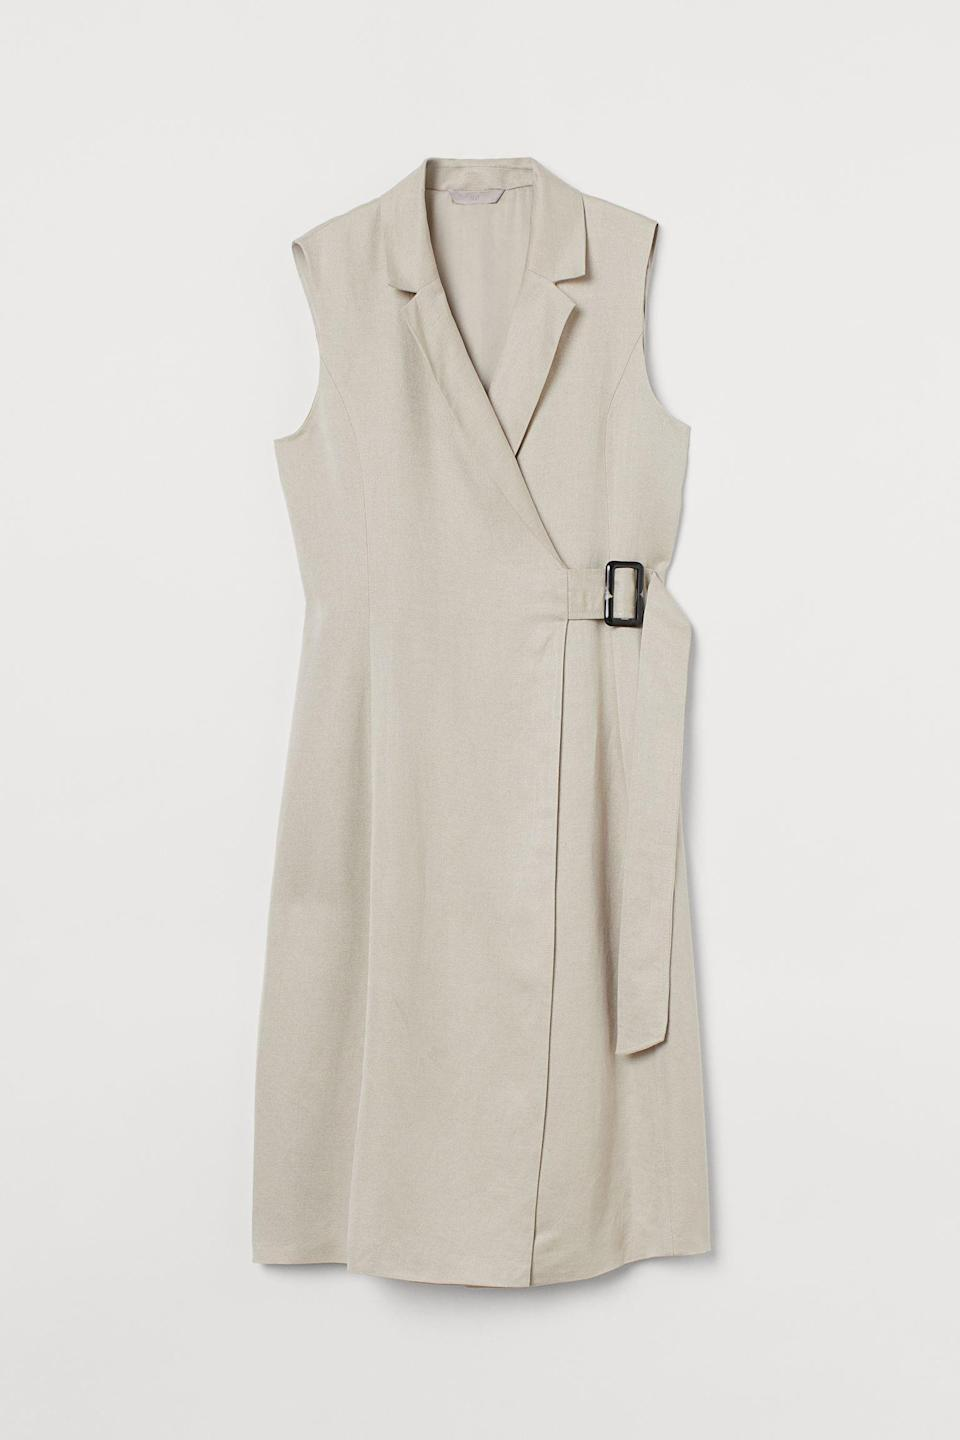 <p>Casual Friday, but make it chic with this <span>Jacket Dress</span> ($40, originally $50).</p>